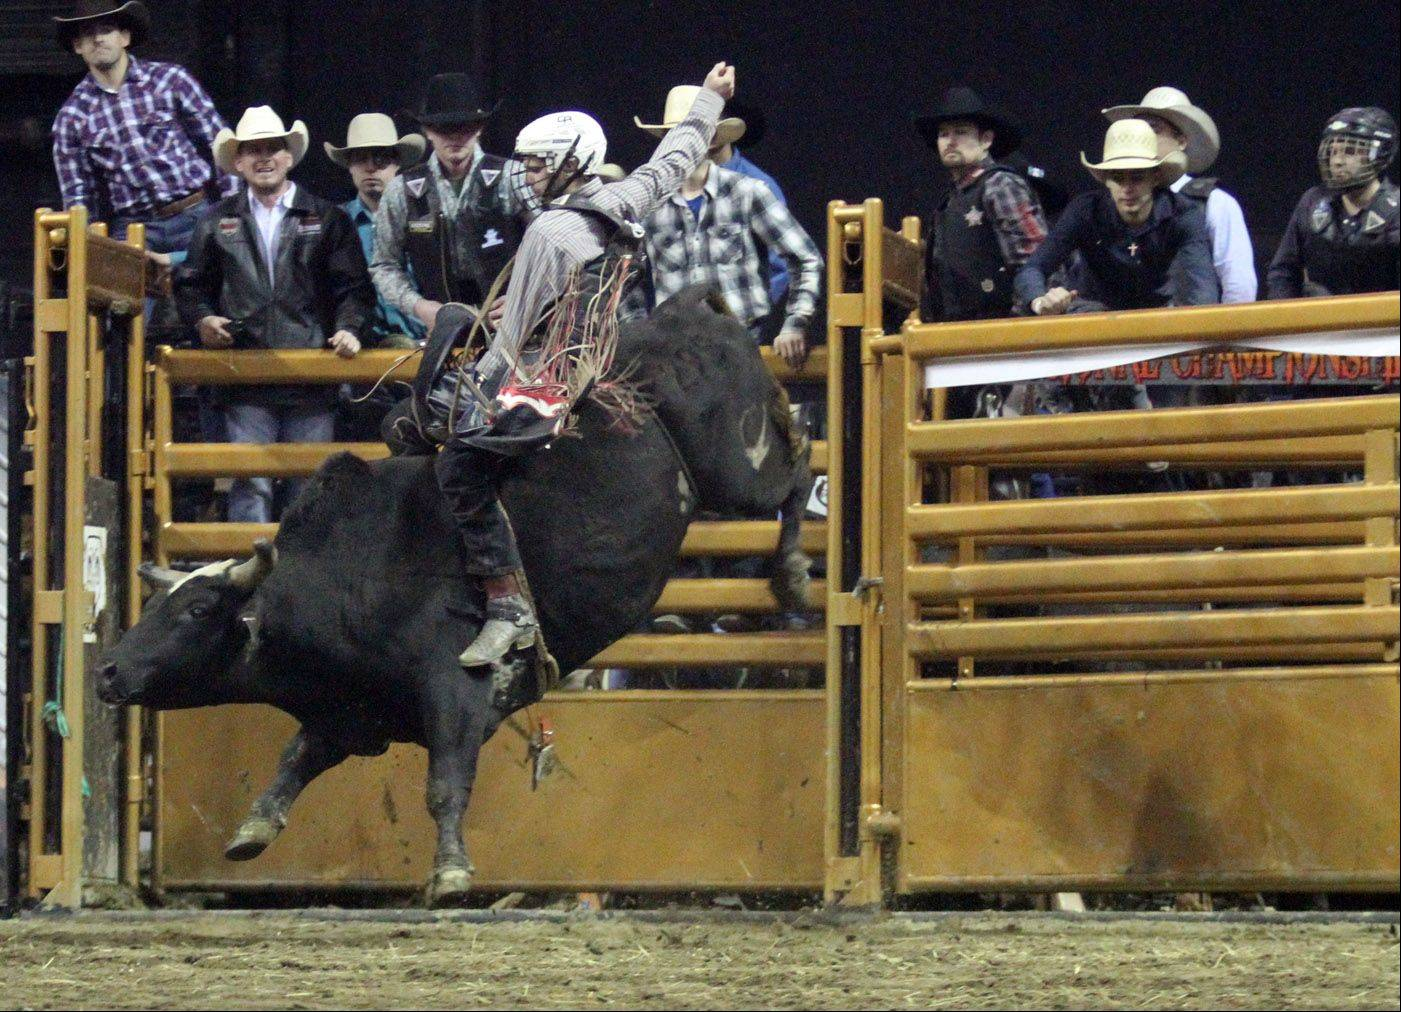 Colton May rides a bull during the Professional Championship Bullrider's World Tour Finale V at the Sears Centre in Hoffman Estates on Saturday, February 2, 2013.